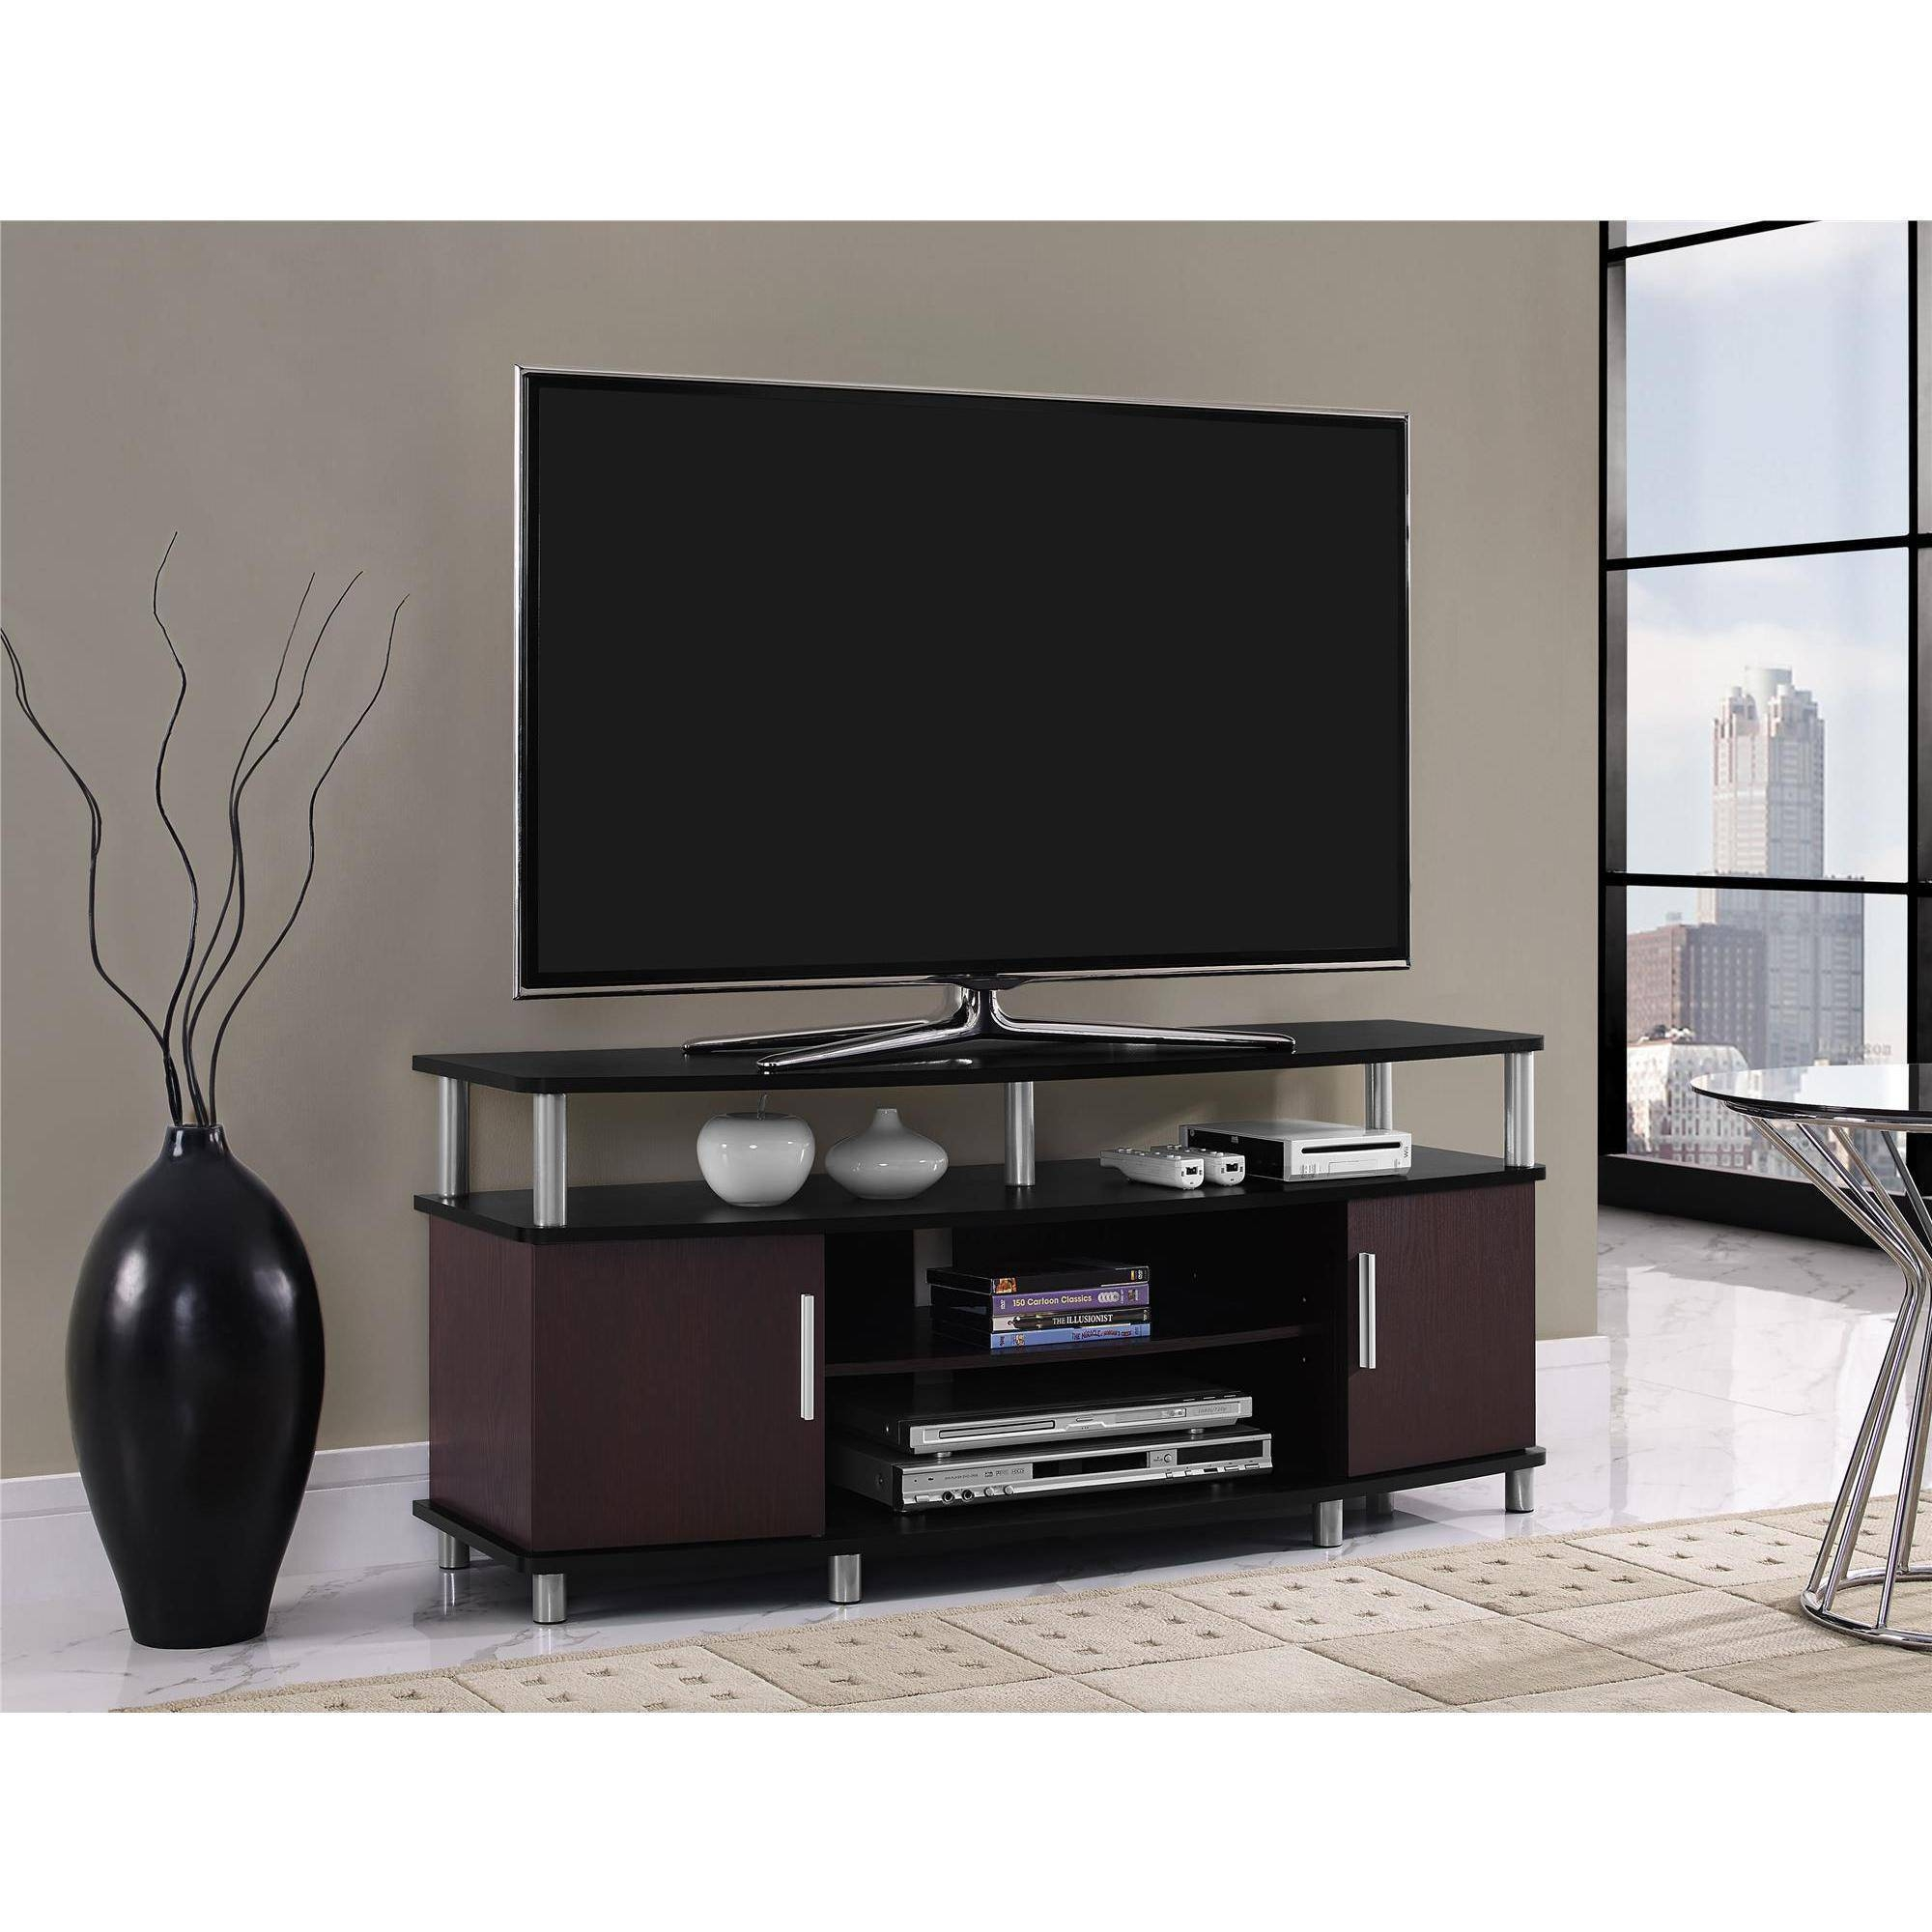 Tv Stands & Entertainment Centers – Walmart With Regard To Open Shelf Tv Stands (View 9 of 15)